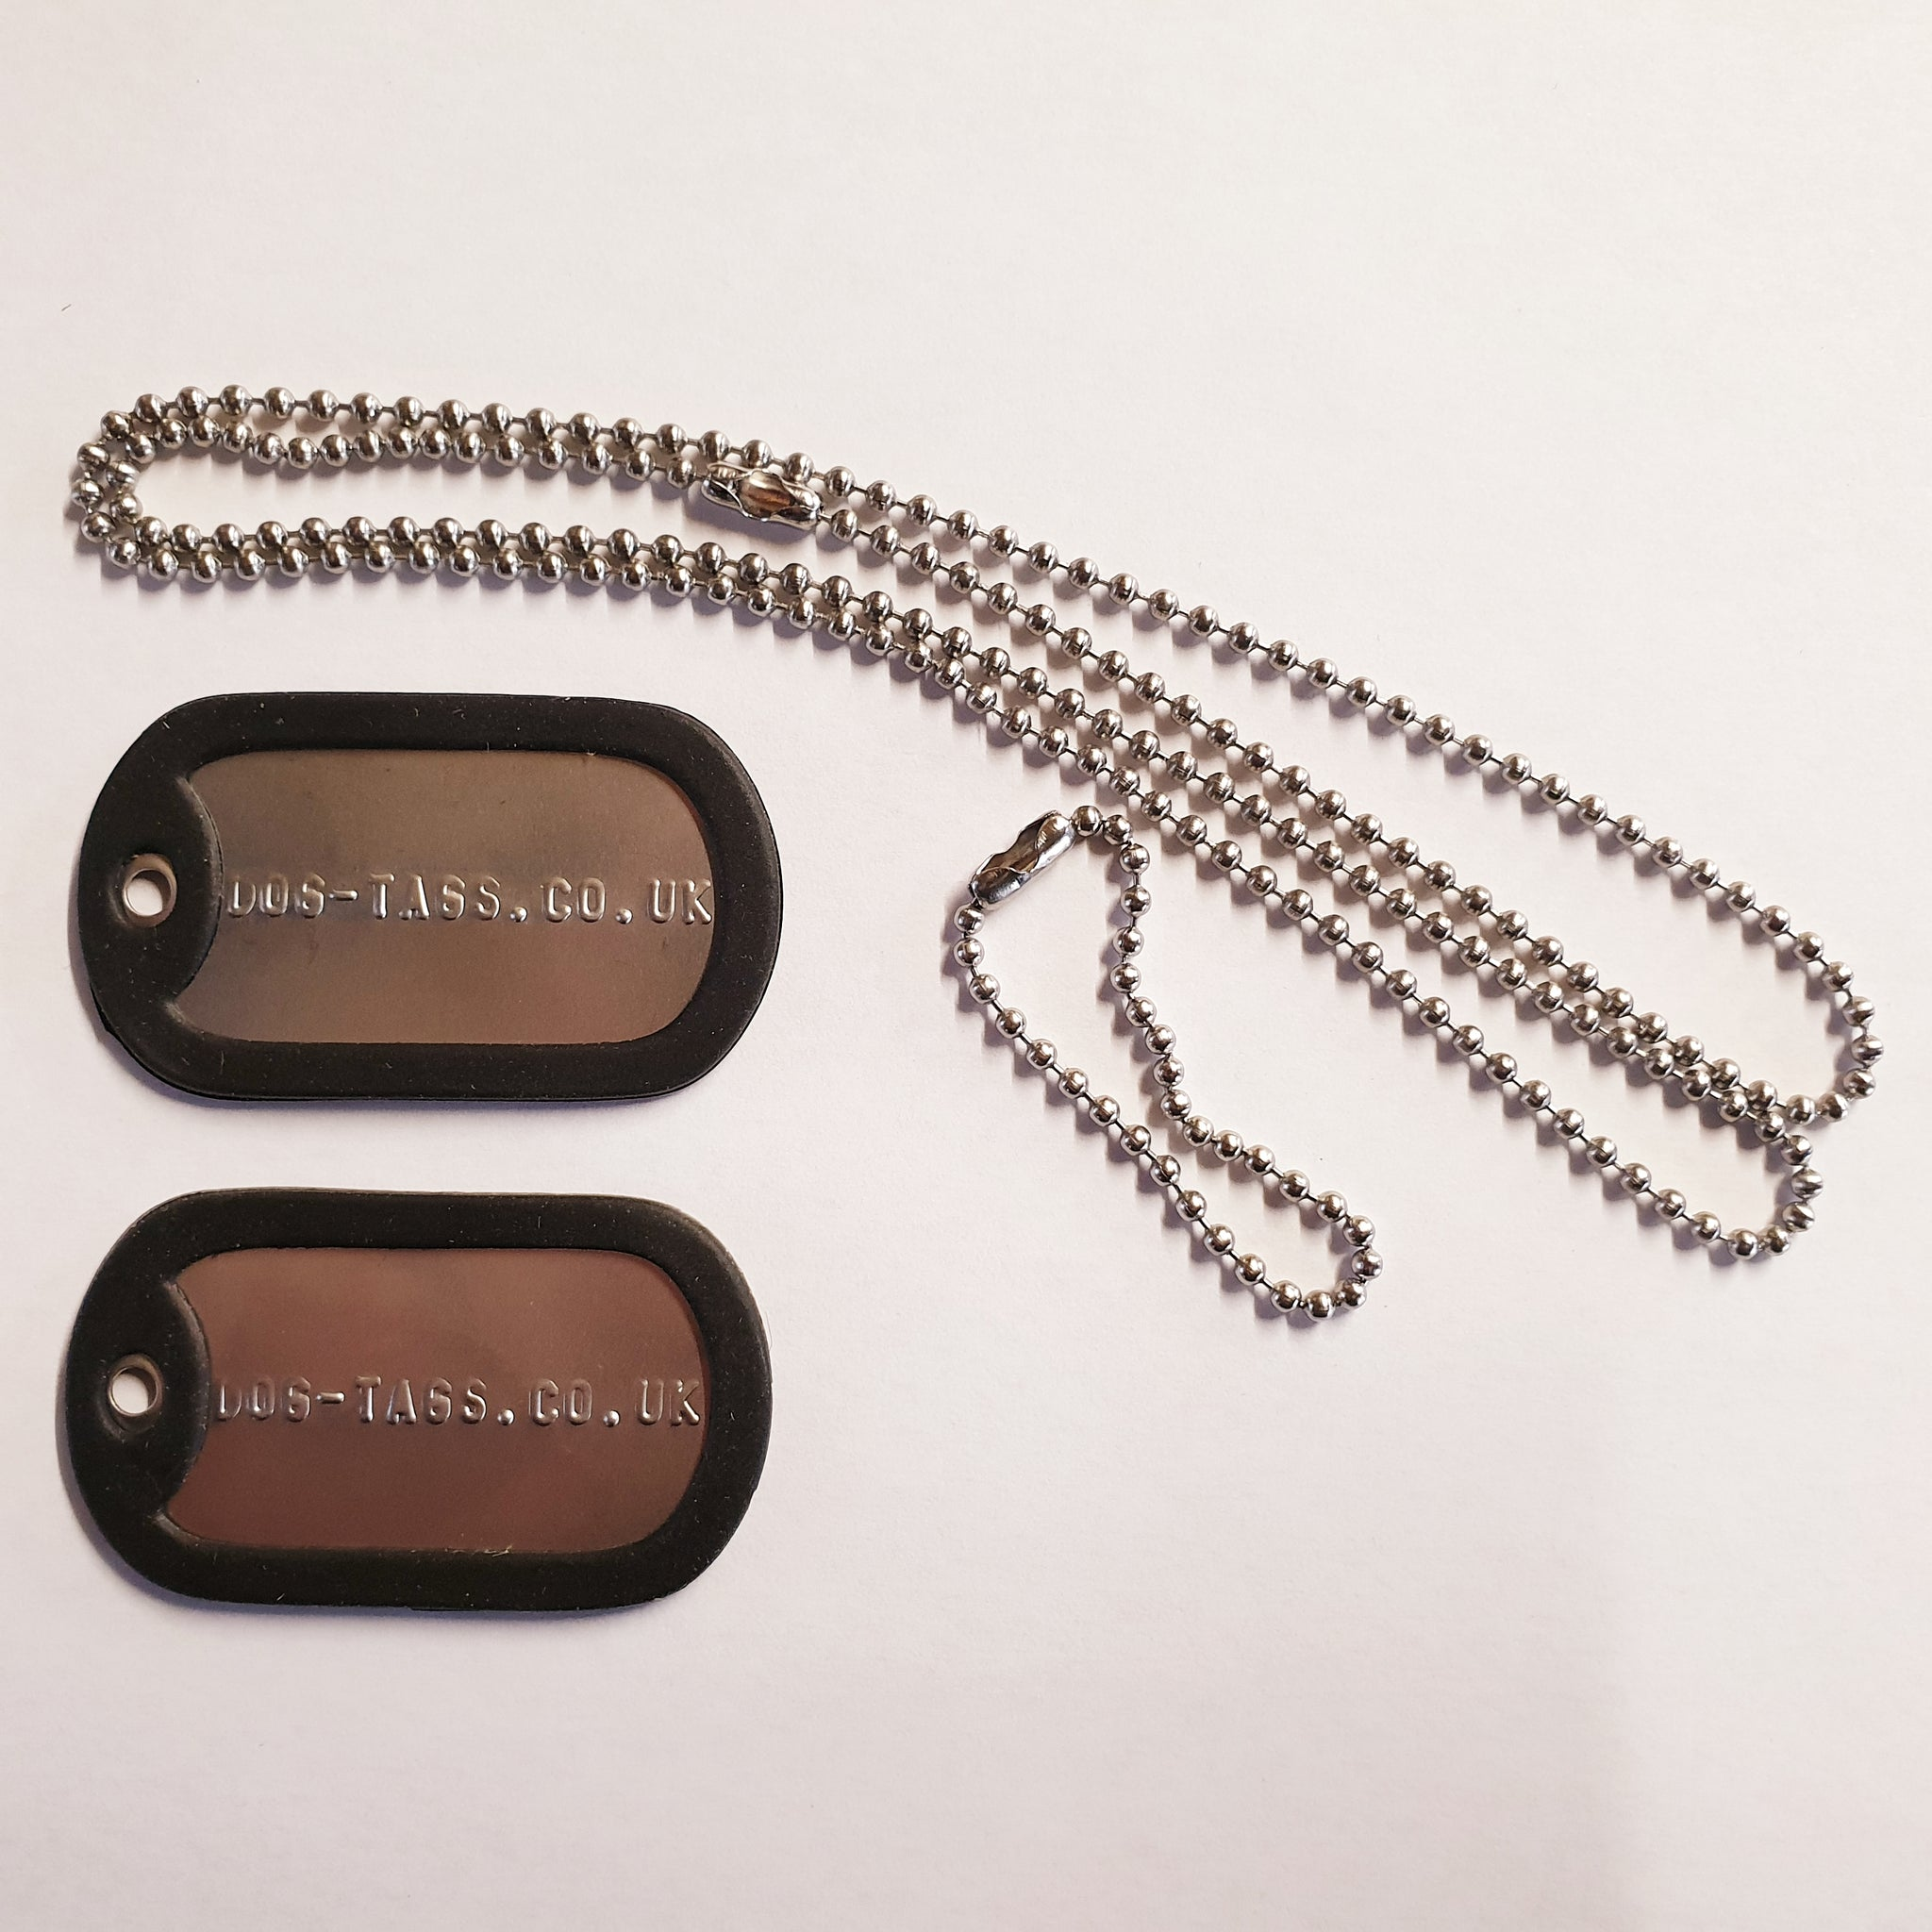 Military Full Dog Tag Set - Printed